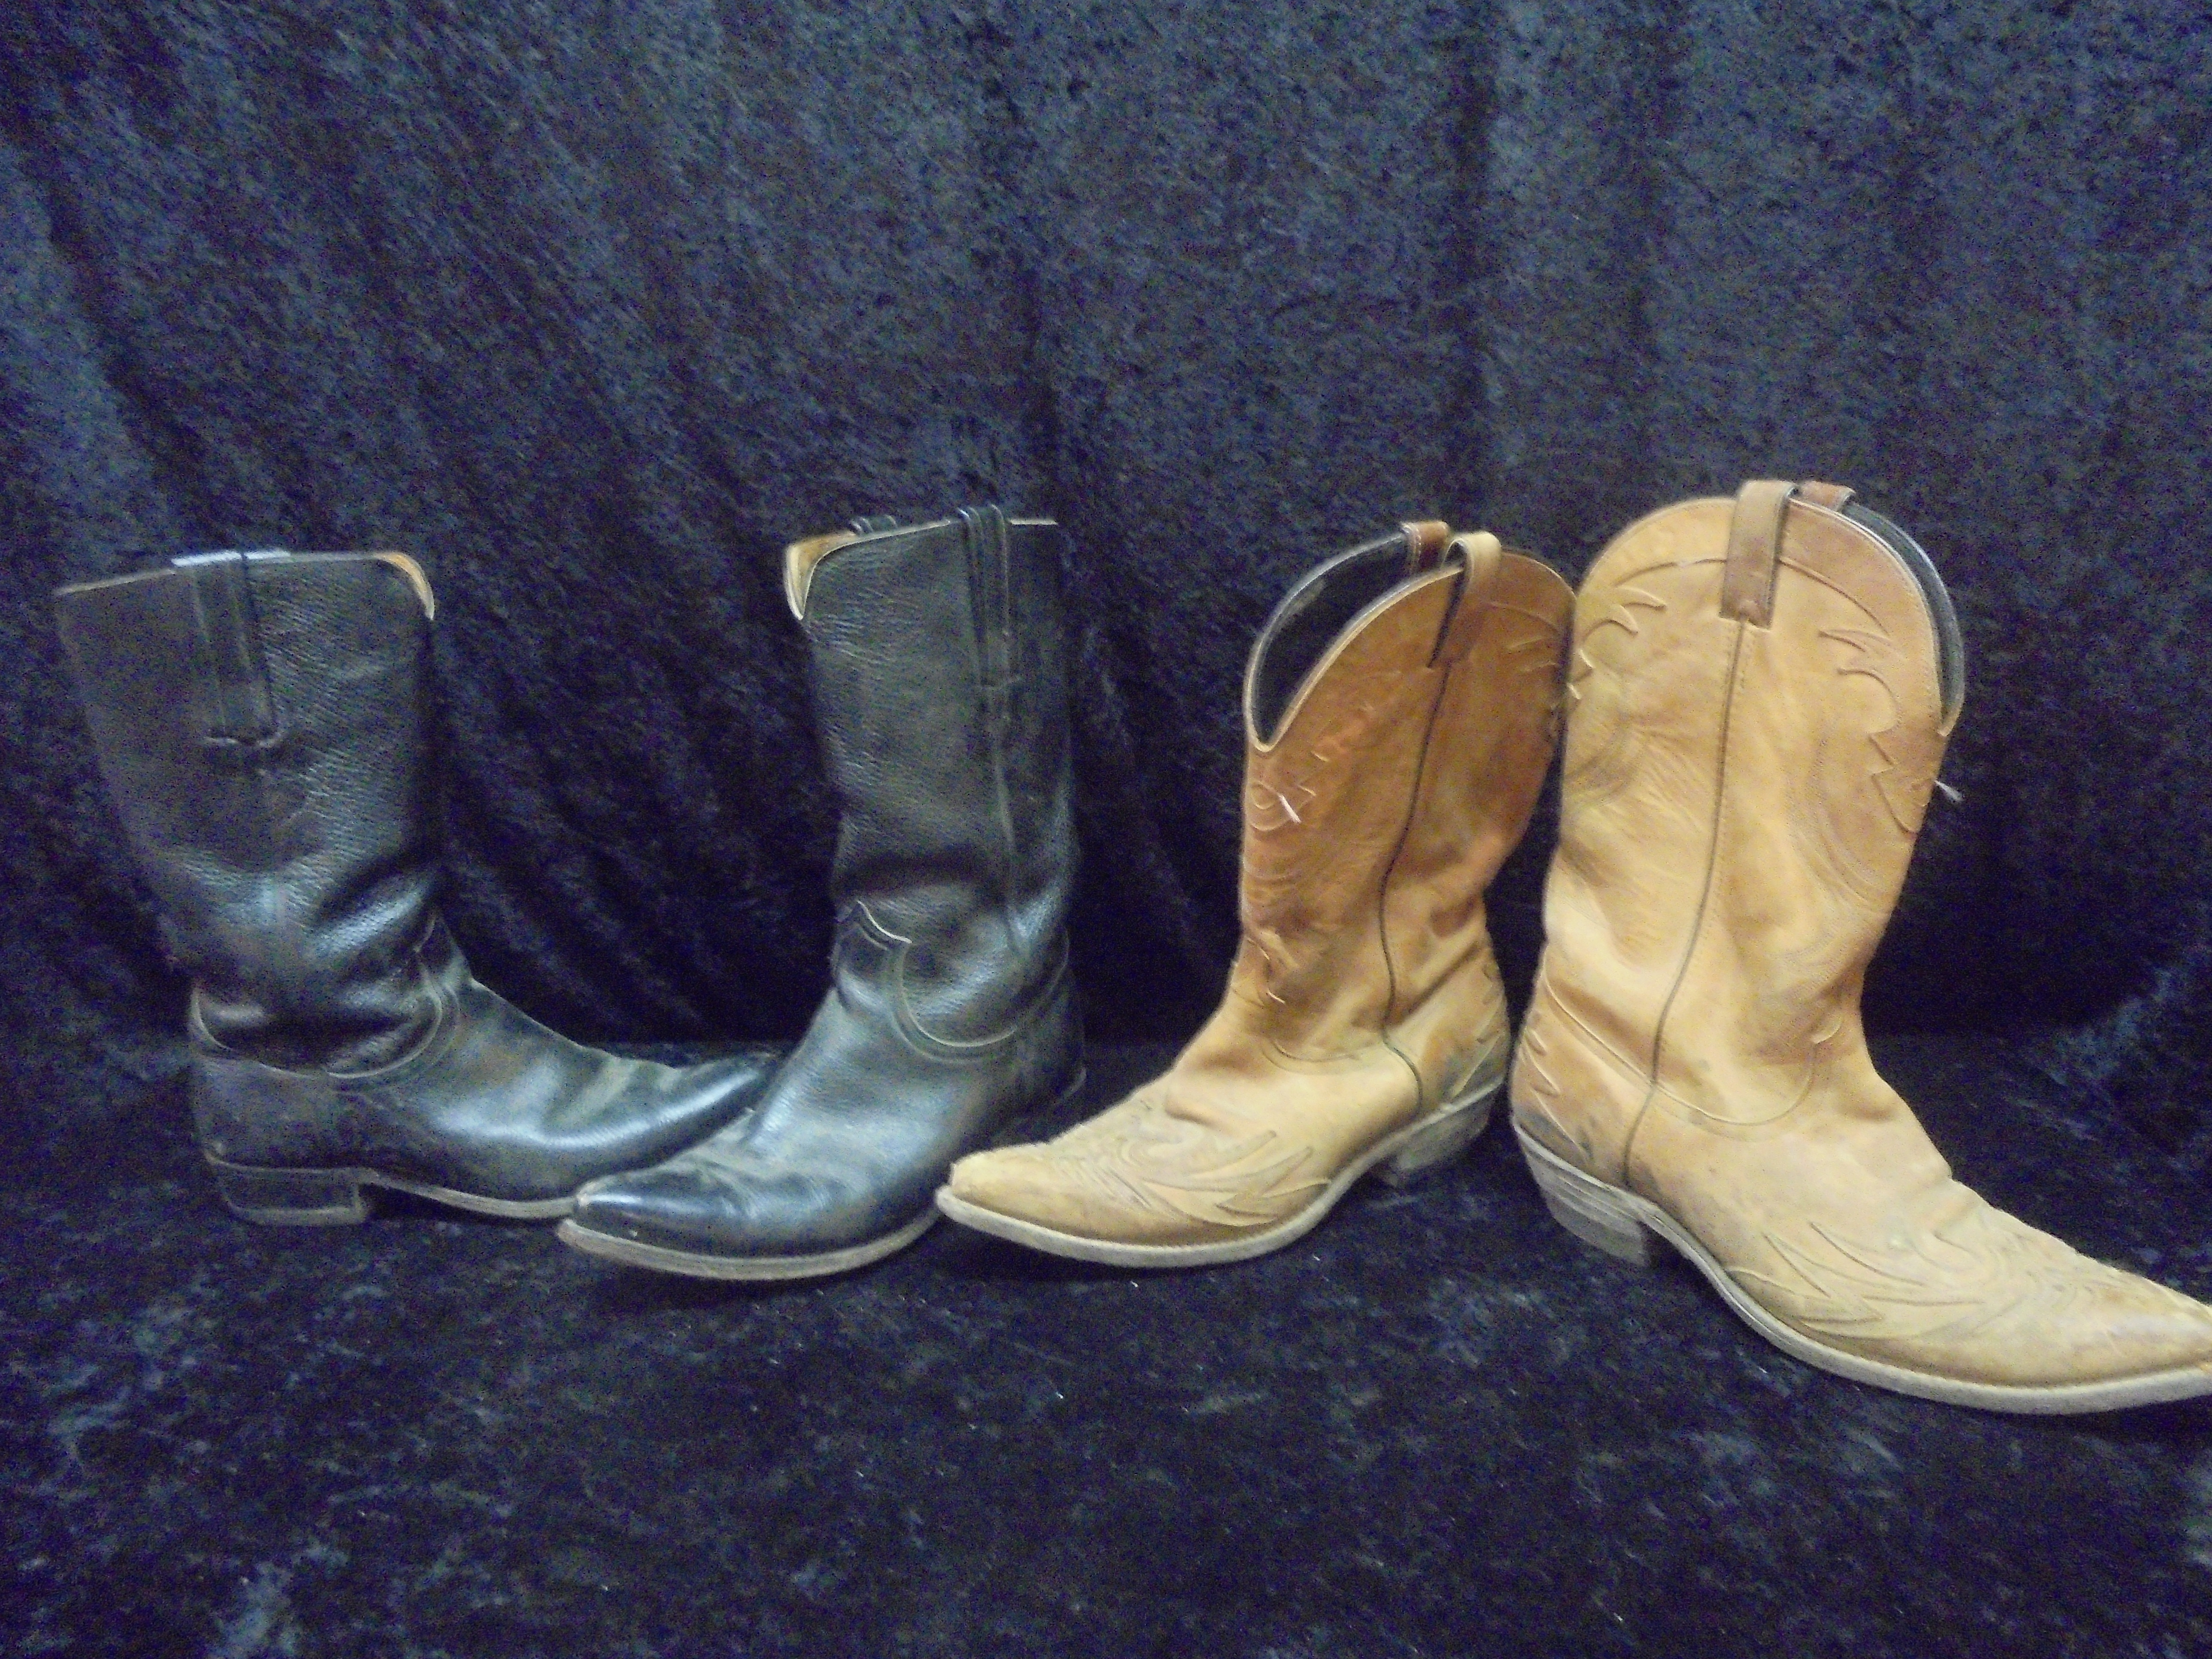 Horse Saddles & Tack, Cowboy Boots, Western Decor & Other Pet ...